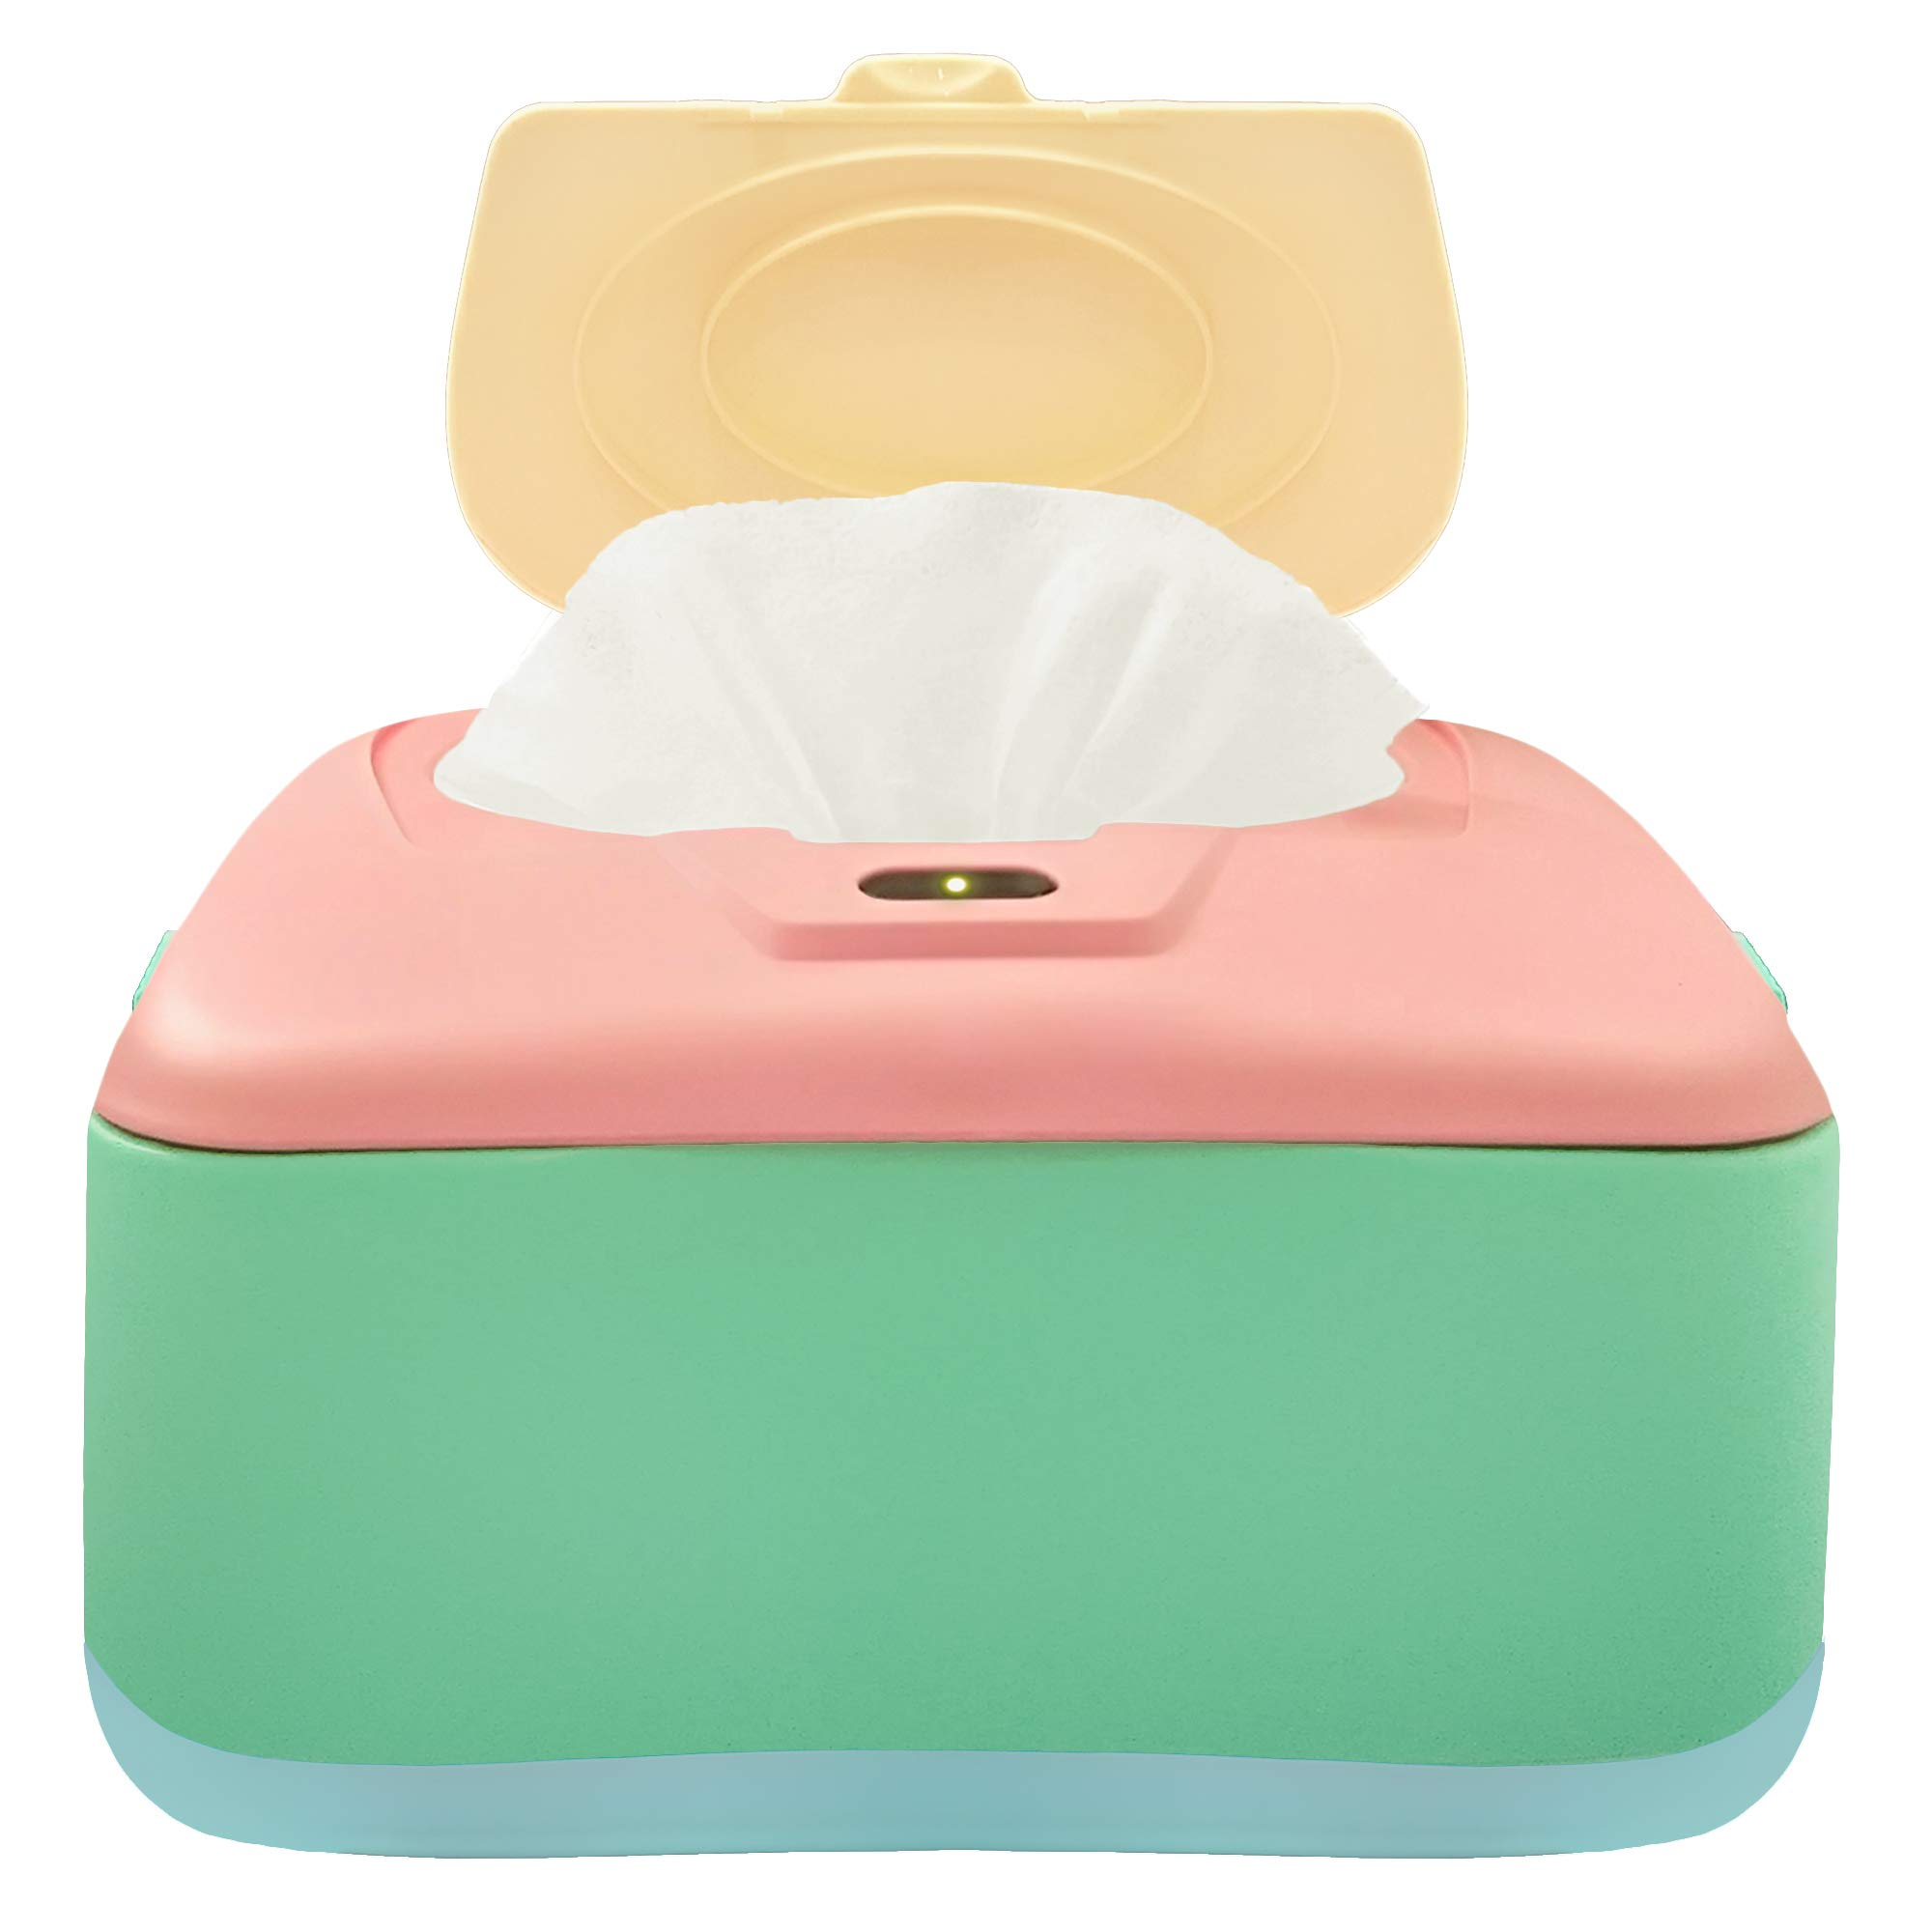 GOGO PURE Baby Wet Wipe Warmer, Dispenser, Holder and Case - with Easy Press On/Off Switch, Only Available at Amazon